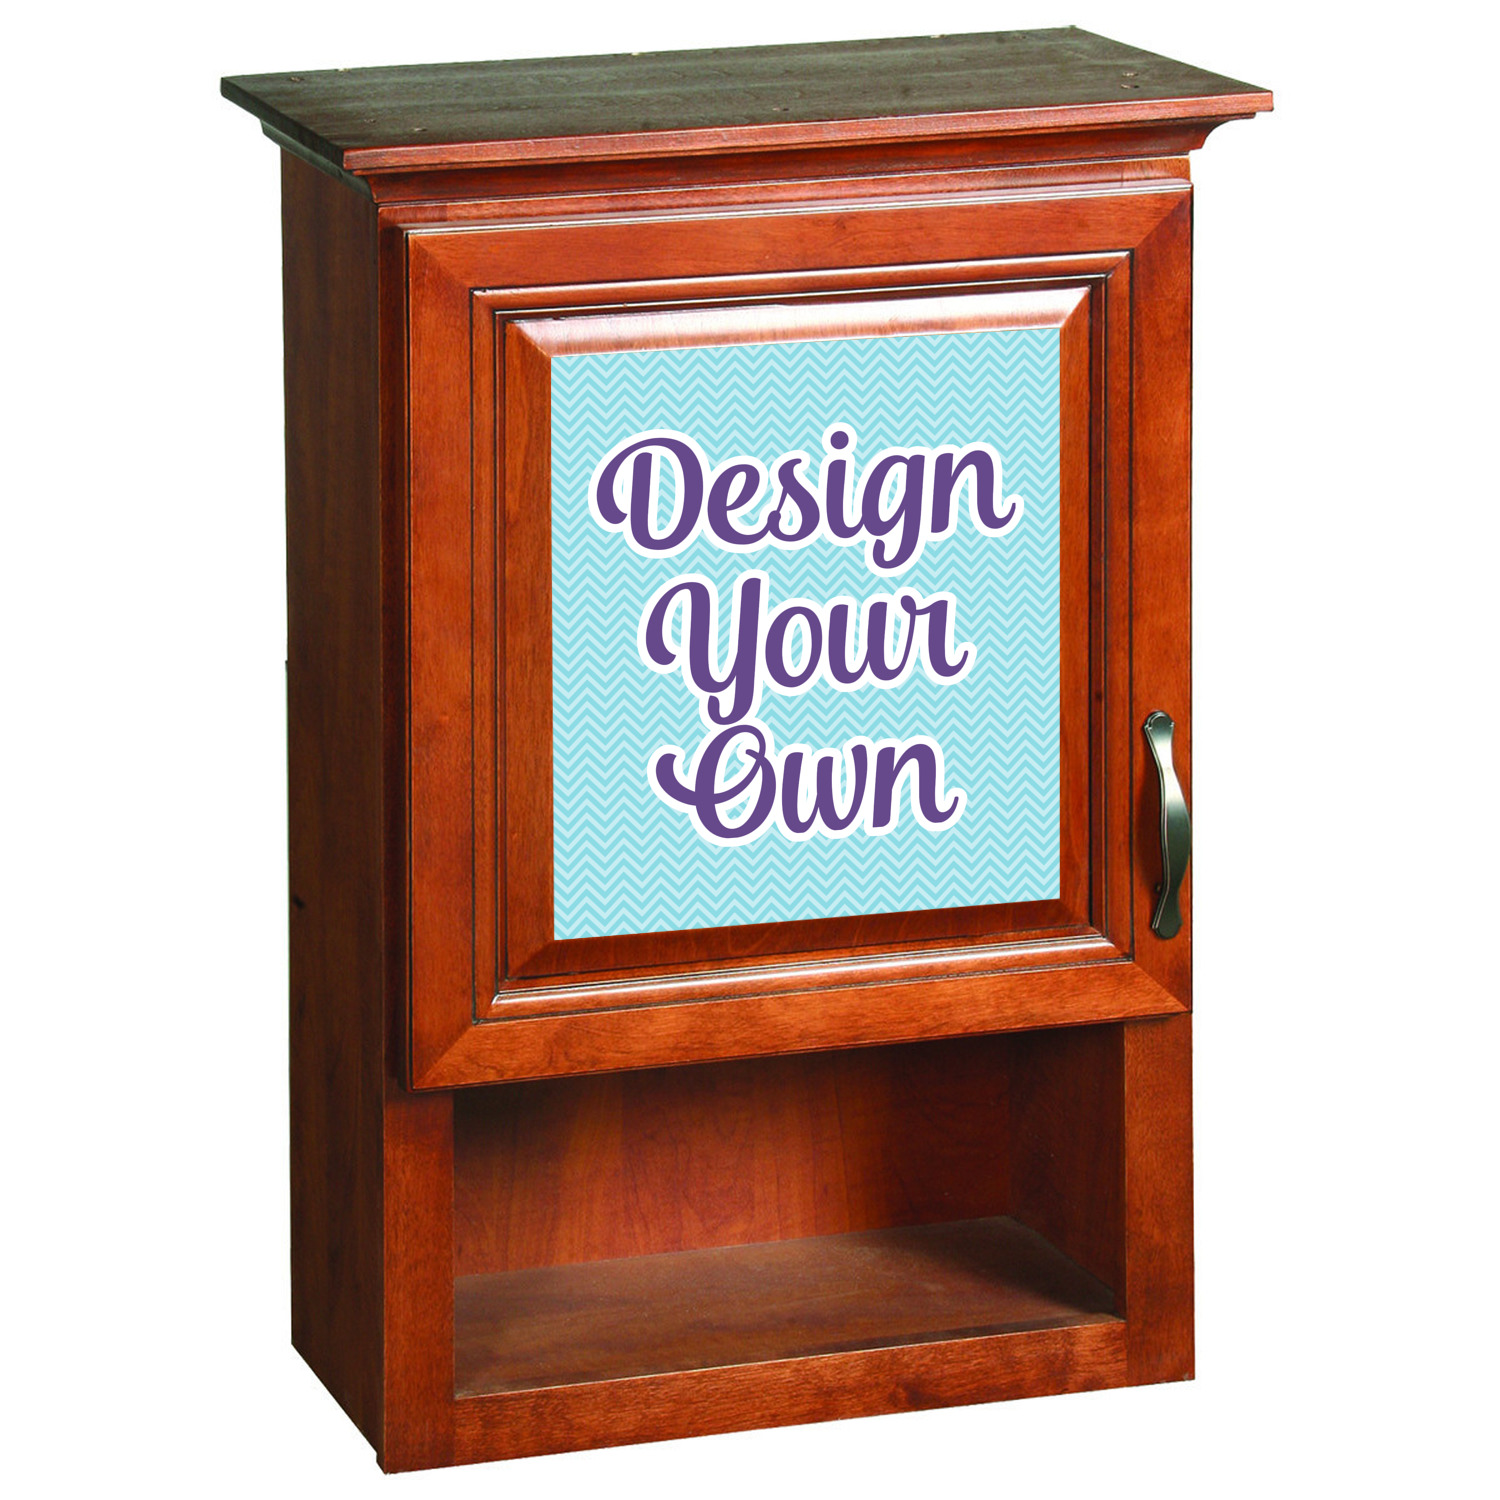 Design Your Own Kitchen Cabinets Online Free: Design Your Own Cabinet Decal